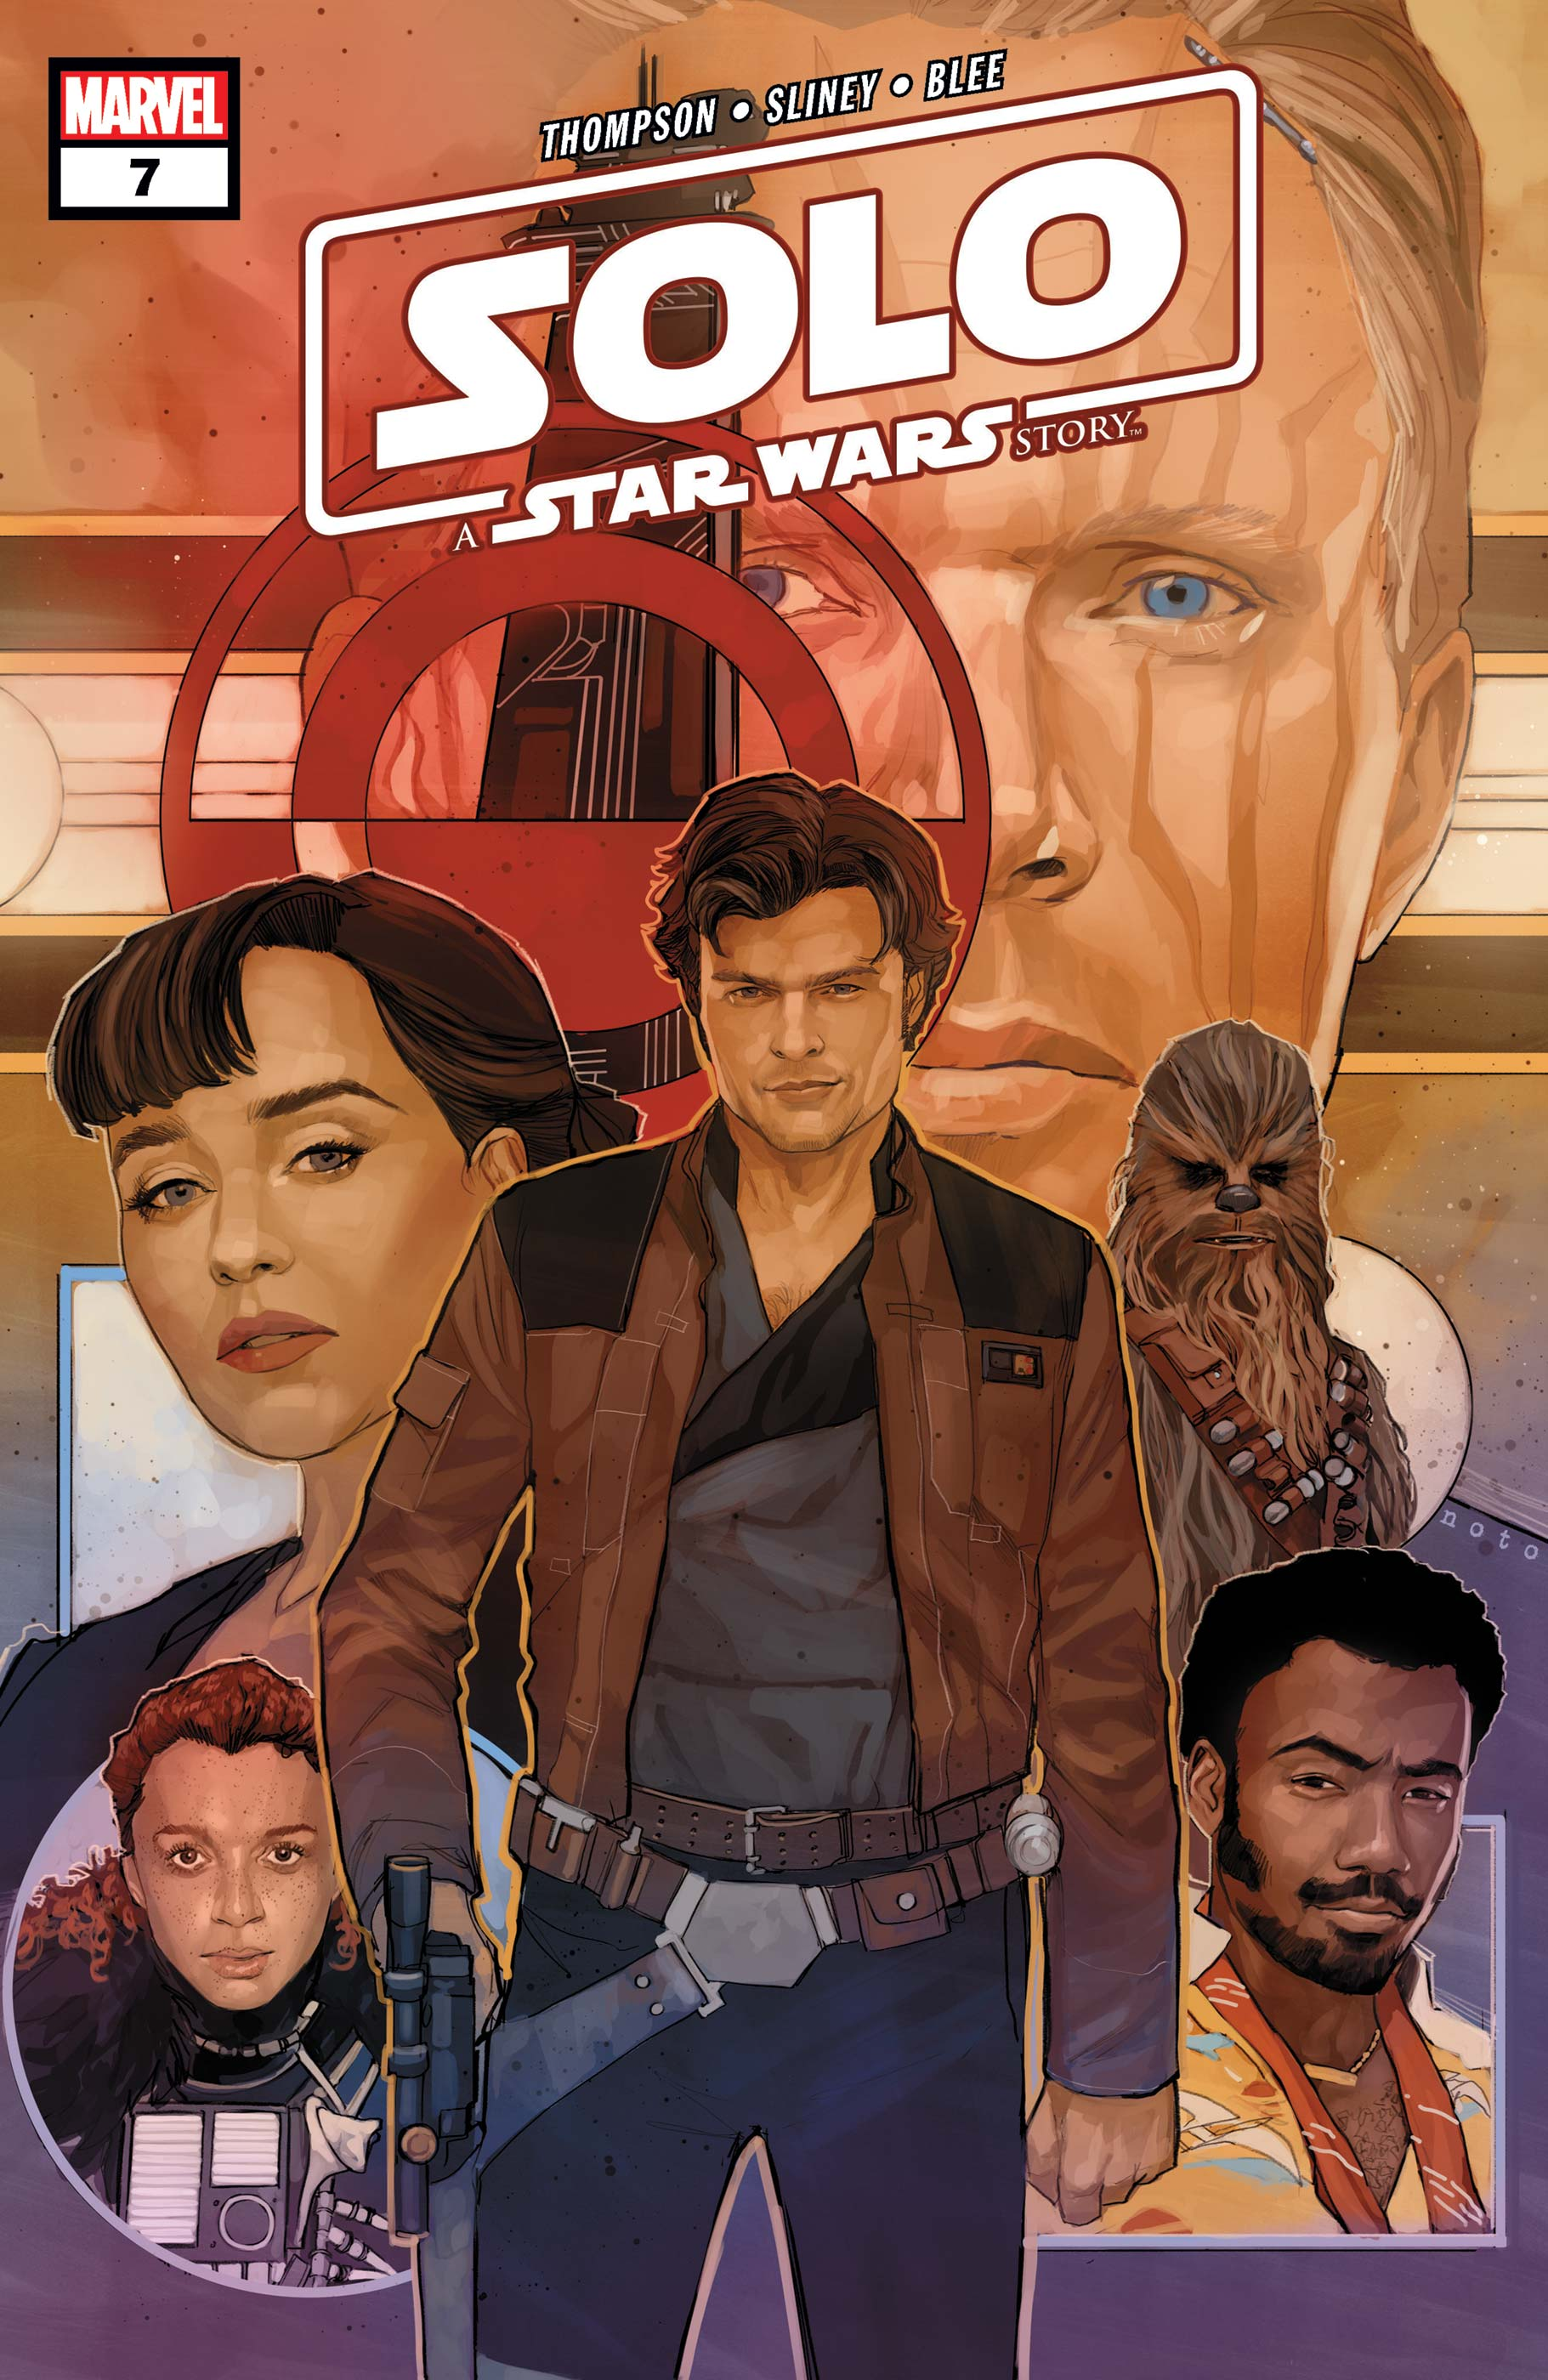 Solo: A Star Wars Story Adaptation (2018) #7